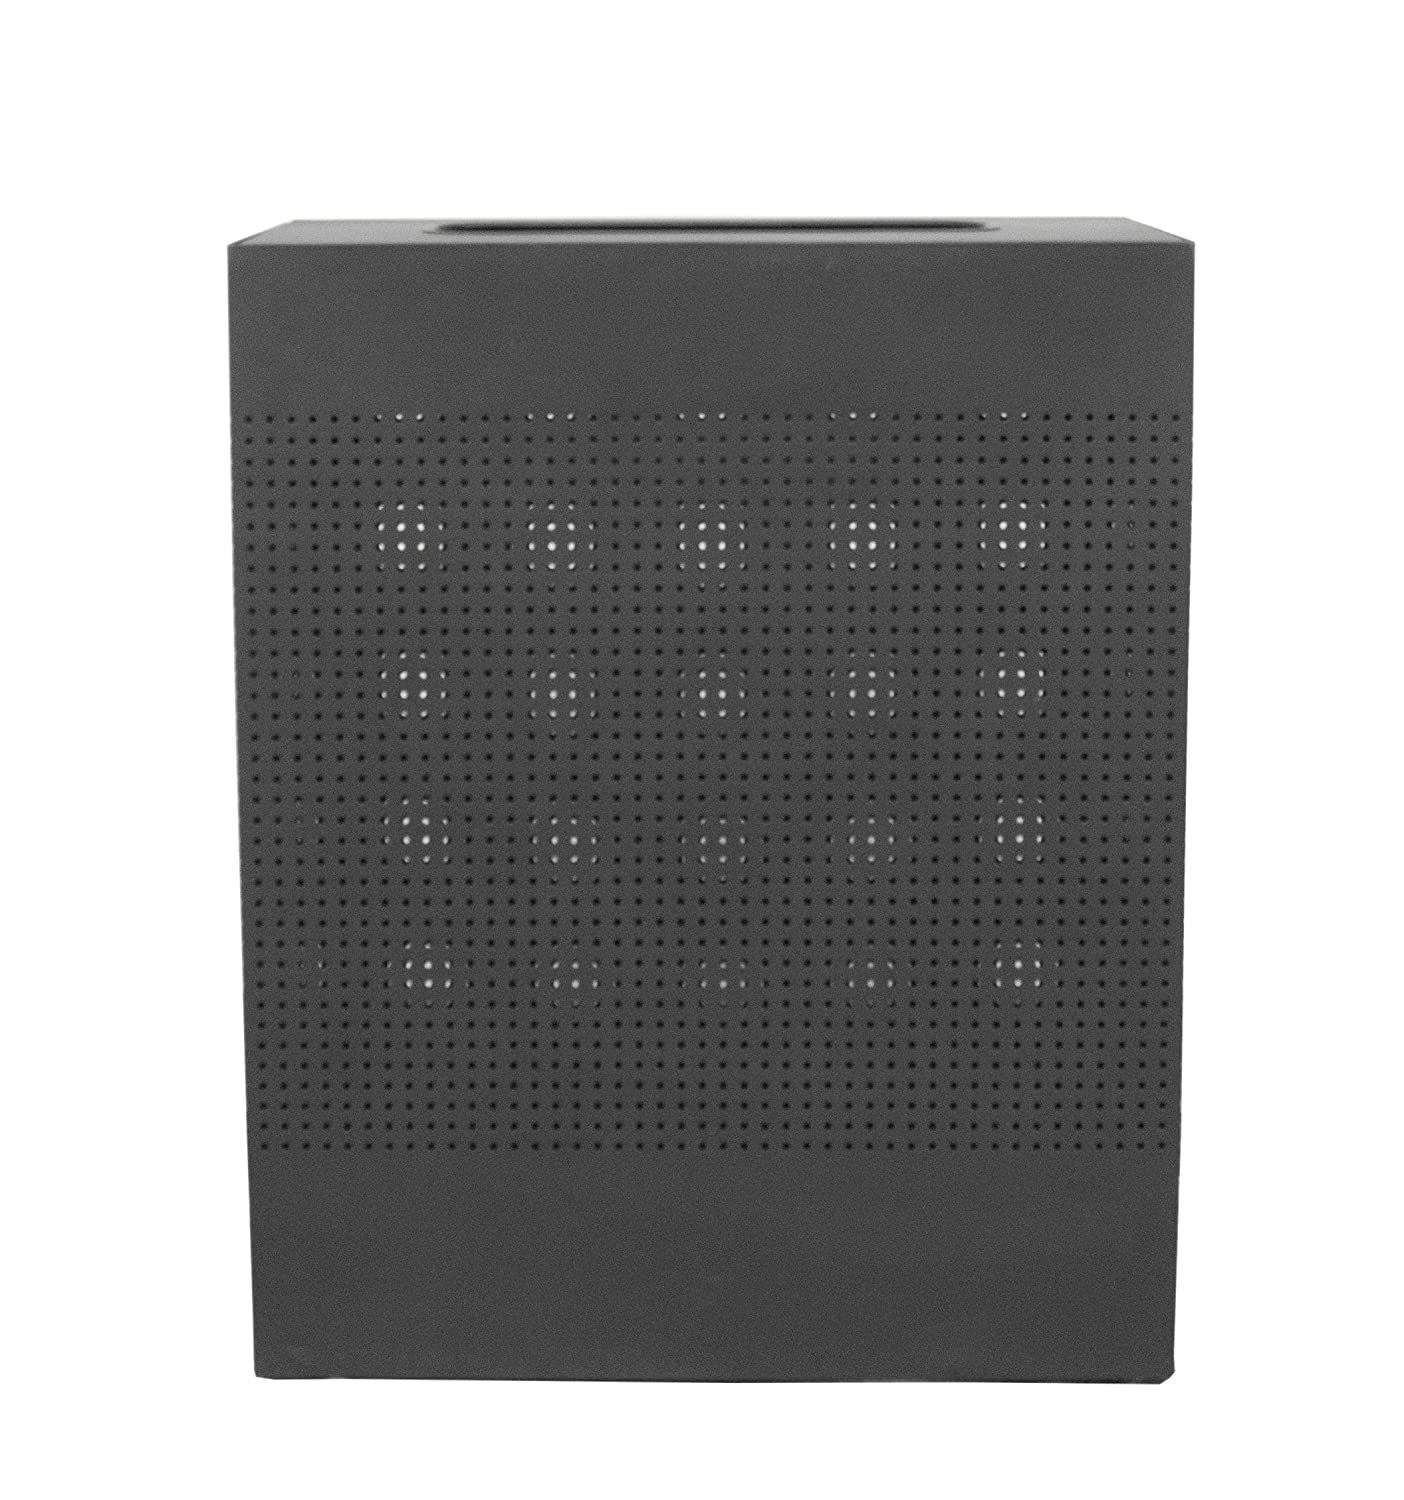 4-5//32 Length x 2-13//32 Width x 0.85 Height Serpac M6 ABS Plastic Enclosure Translucent Gray 4-5//32 Length x 2-13//32 Width x 0.85 Height Serpac Electronic Enclosures TRGY